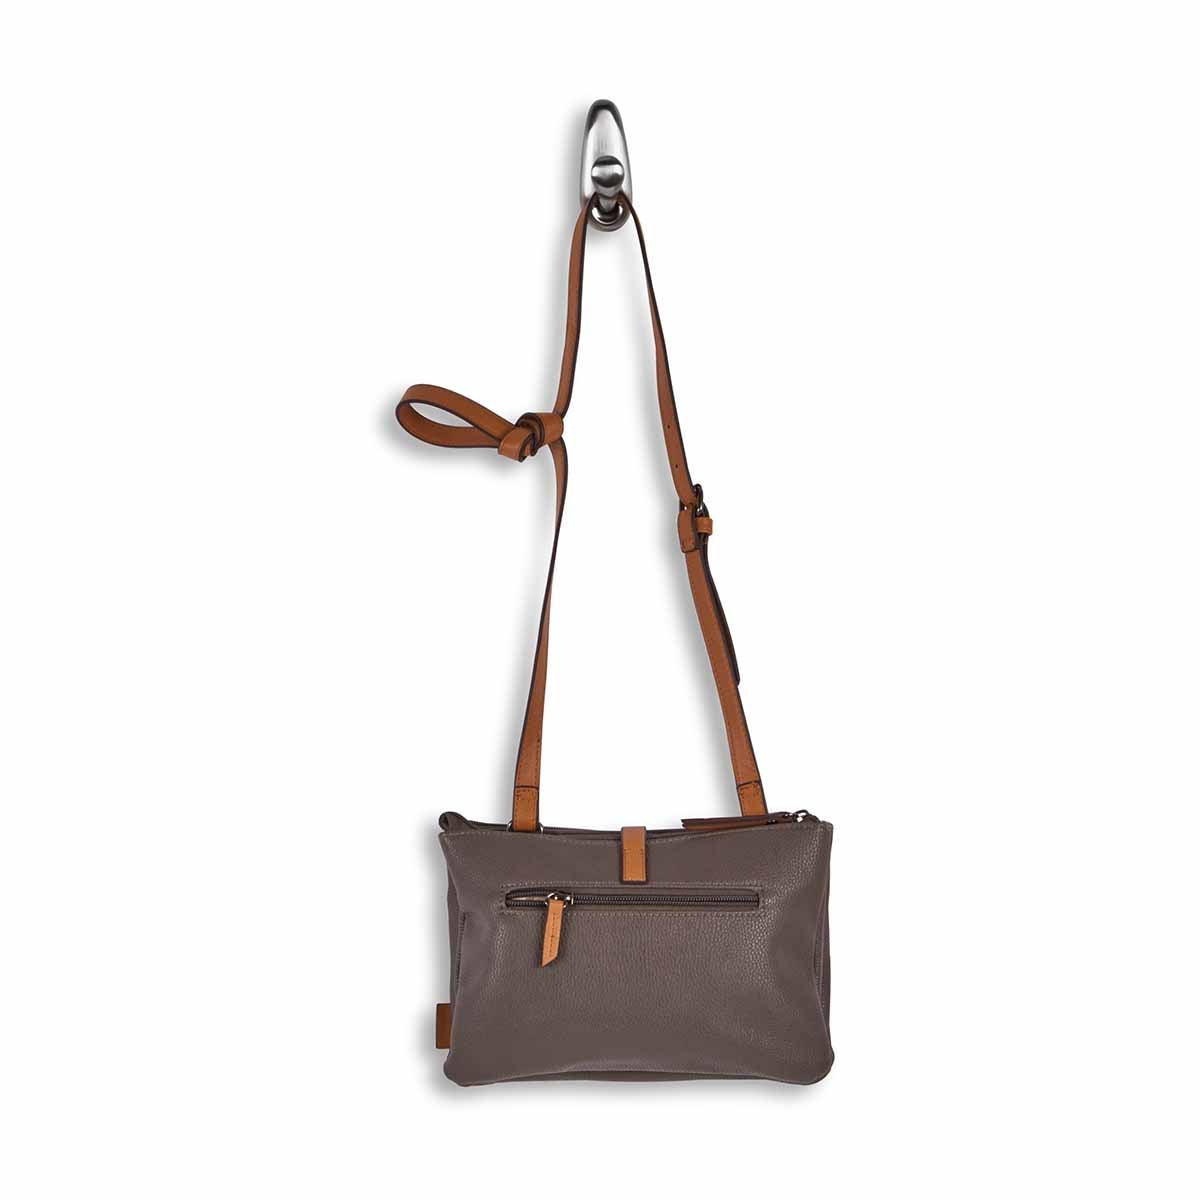 Lds taupe east/west crossbody bag